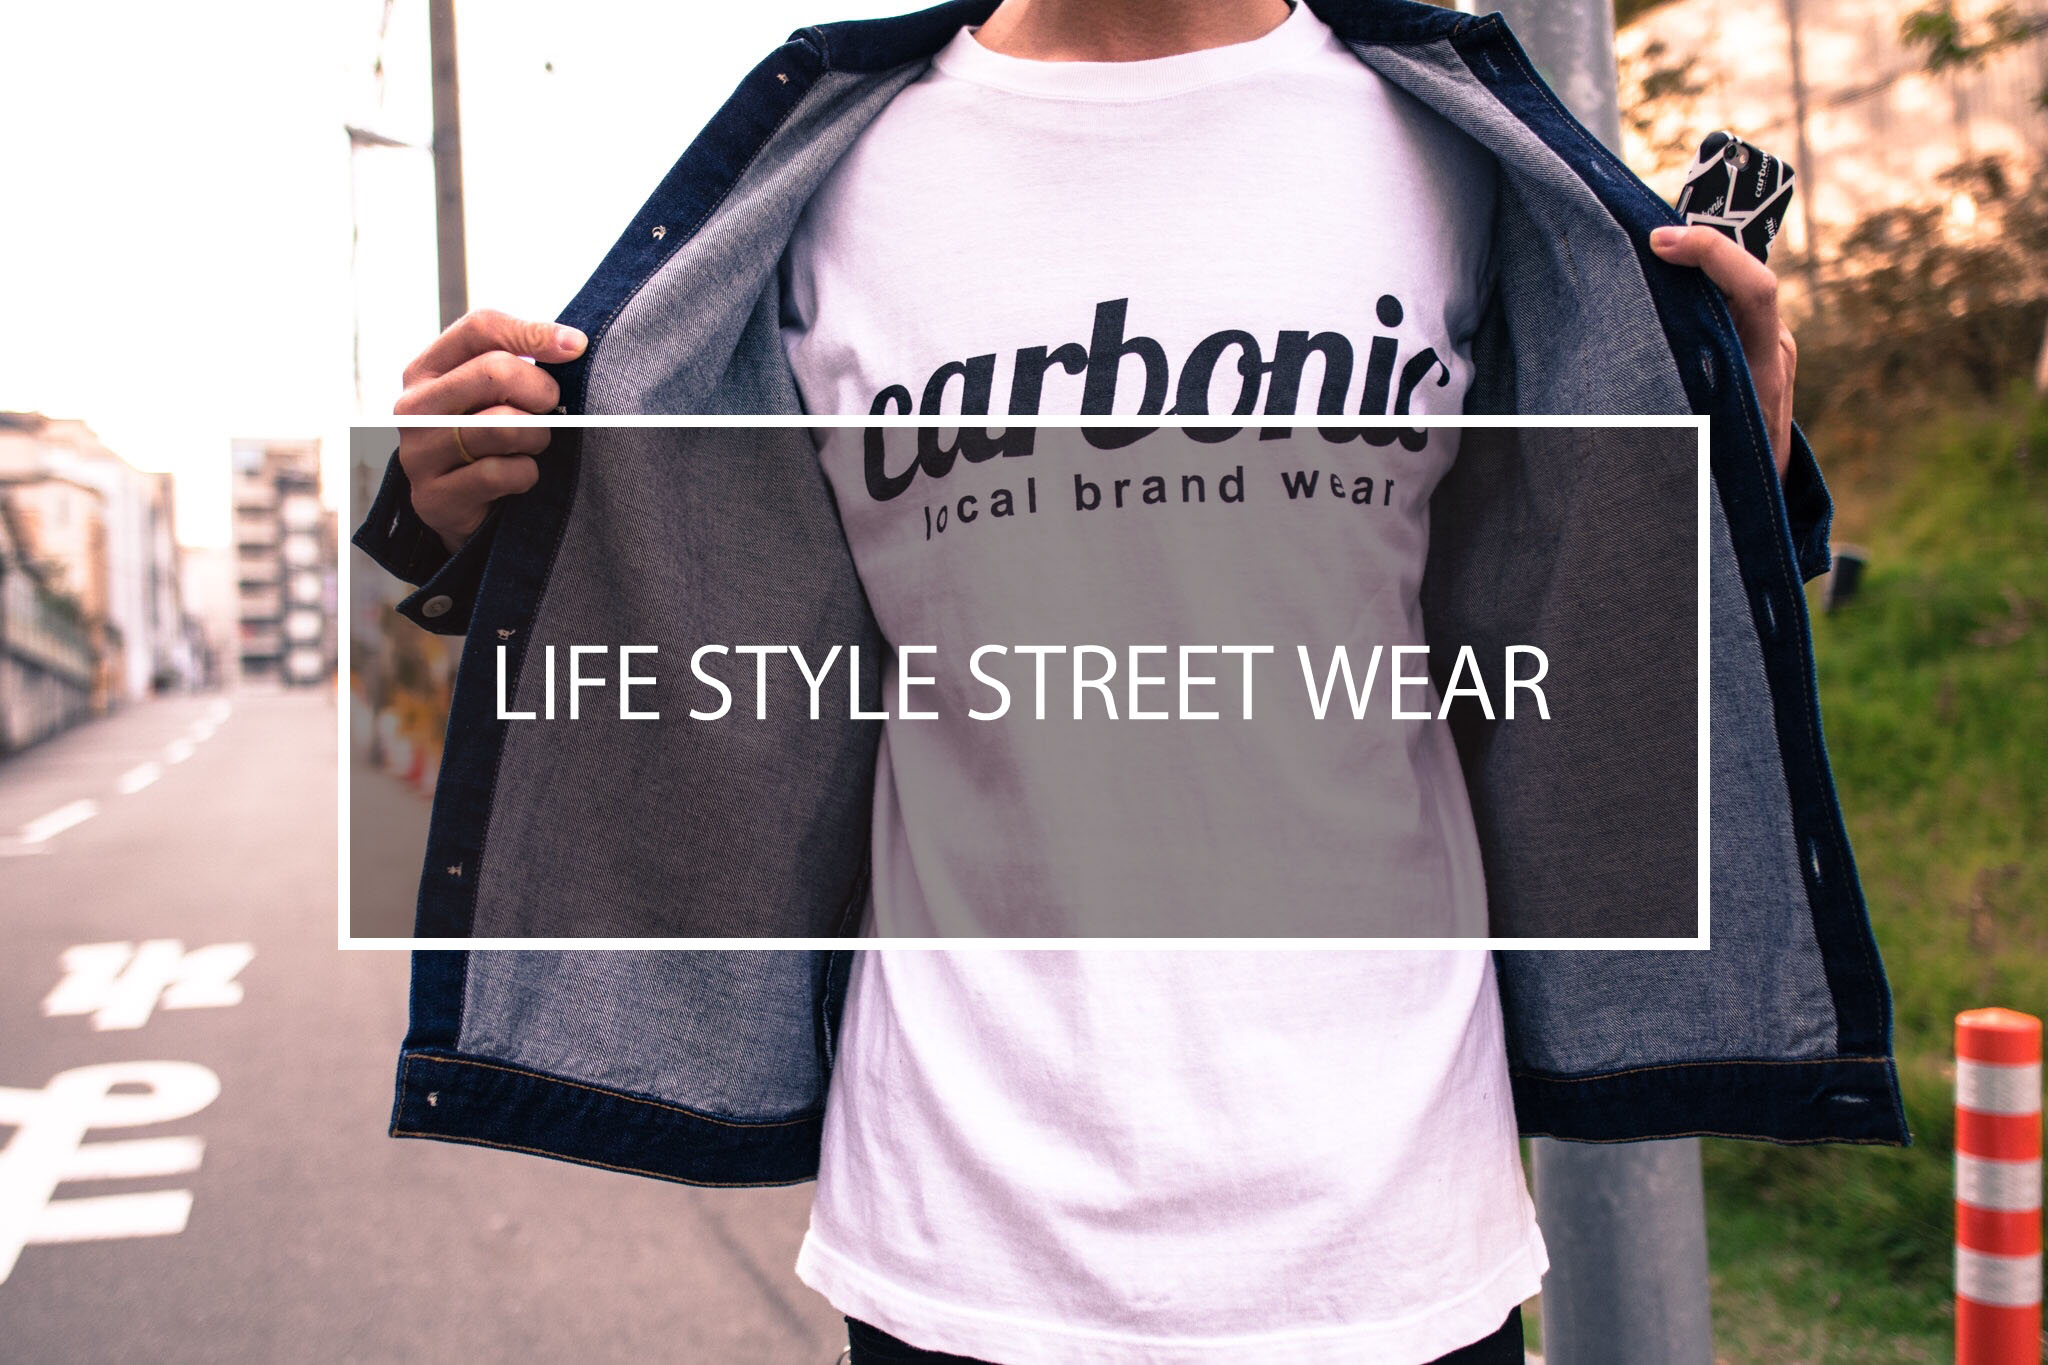 carbonic online store紹介画像1